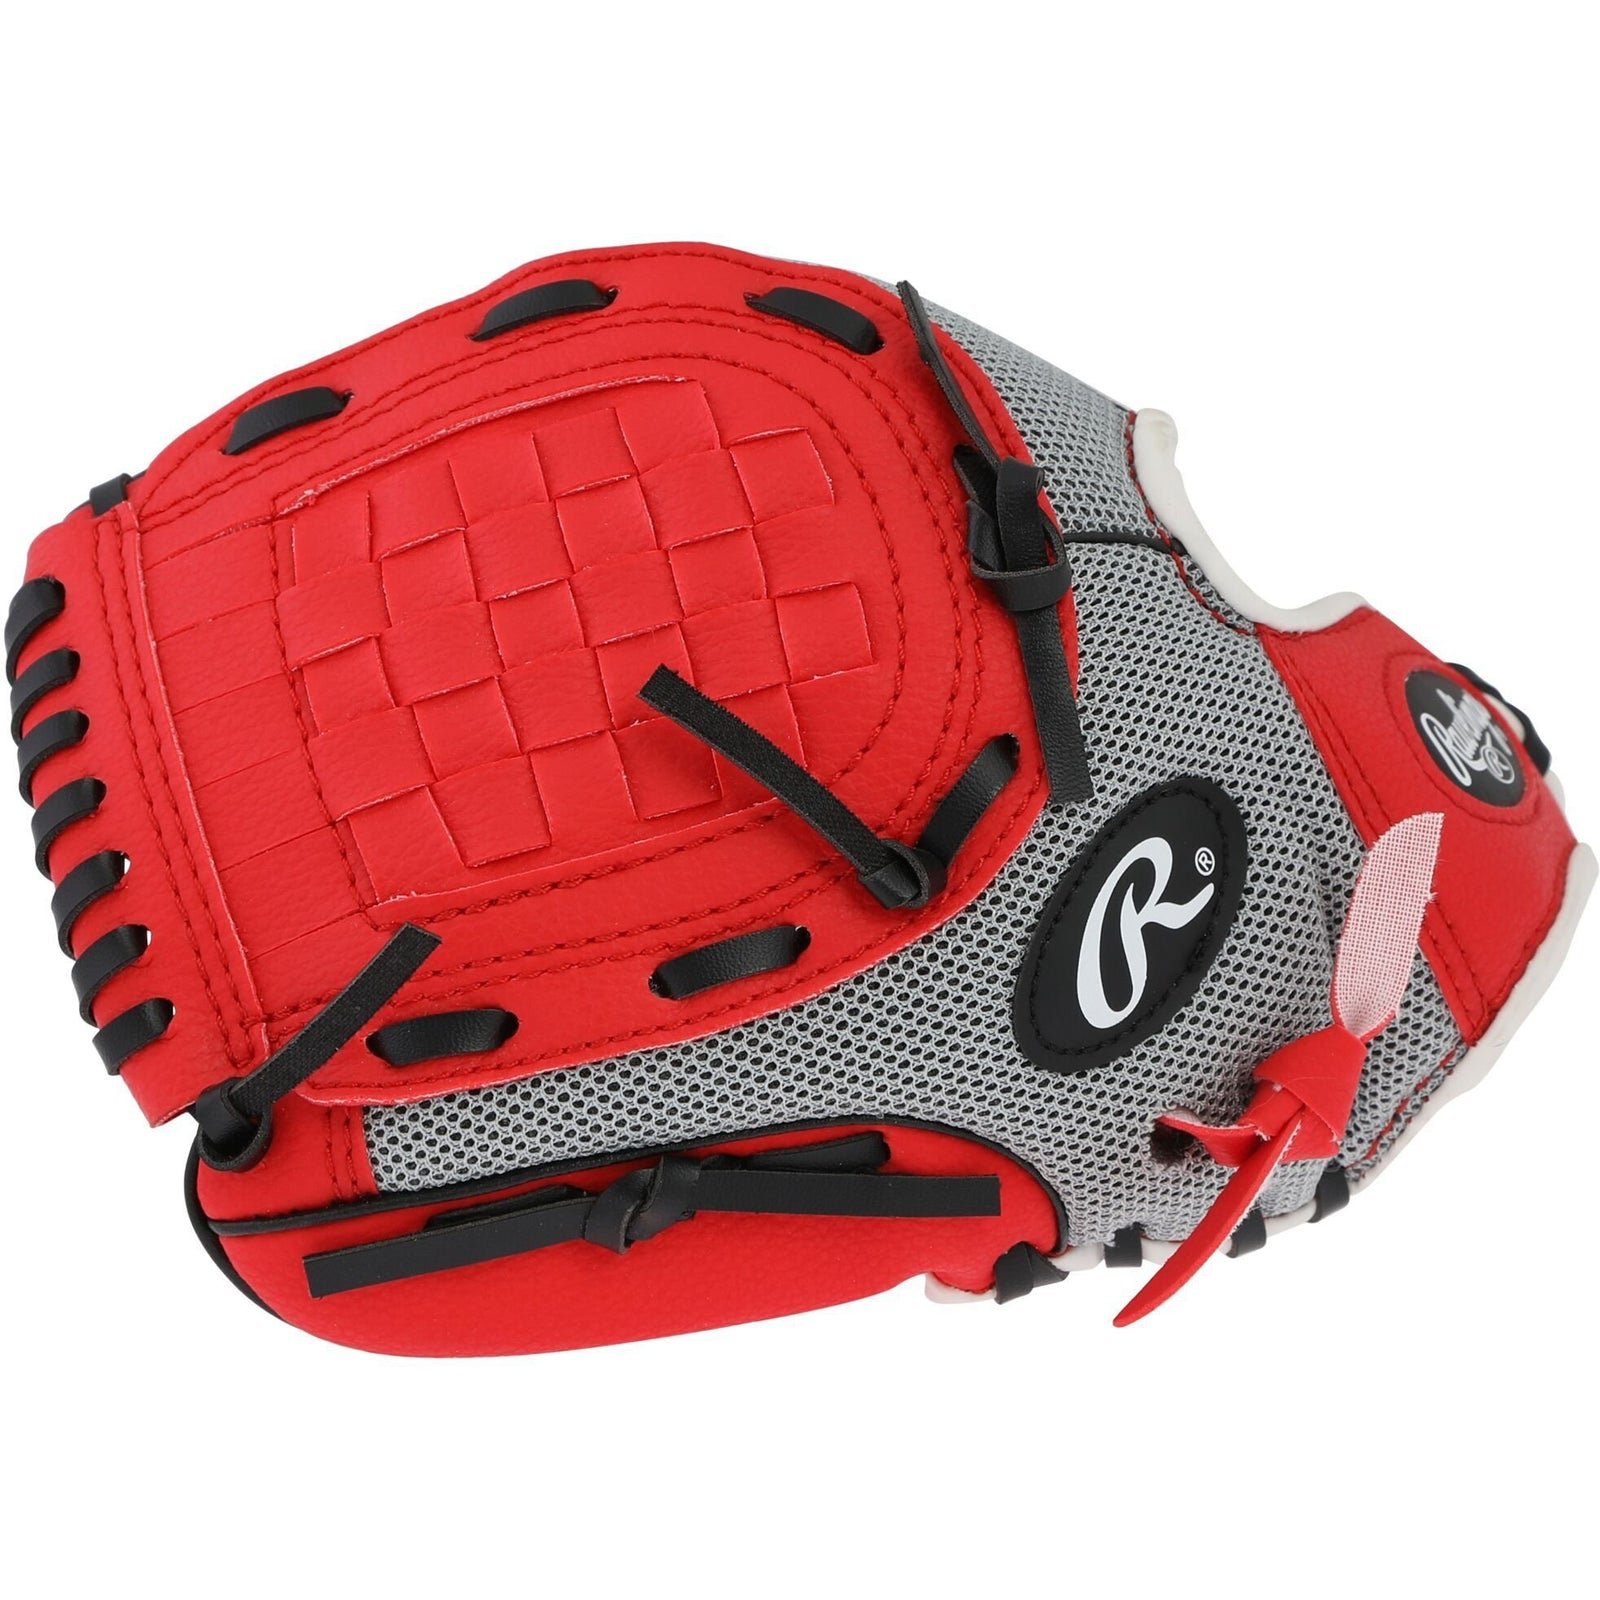 Rawlings Pro 10 inches PL10SS Left Hand Throw T-Ball Youth Baseball Glove